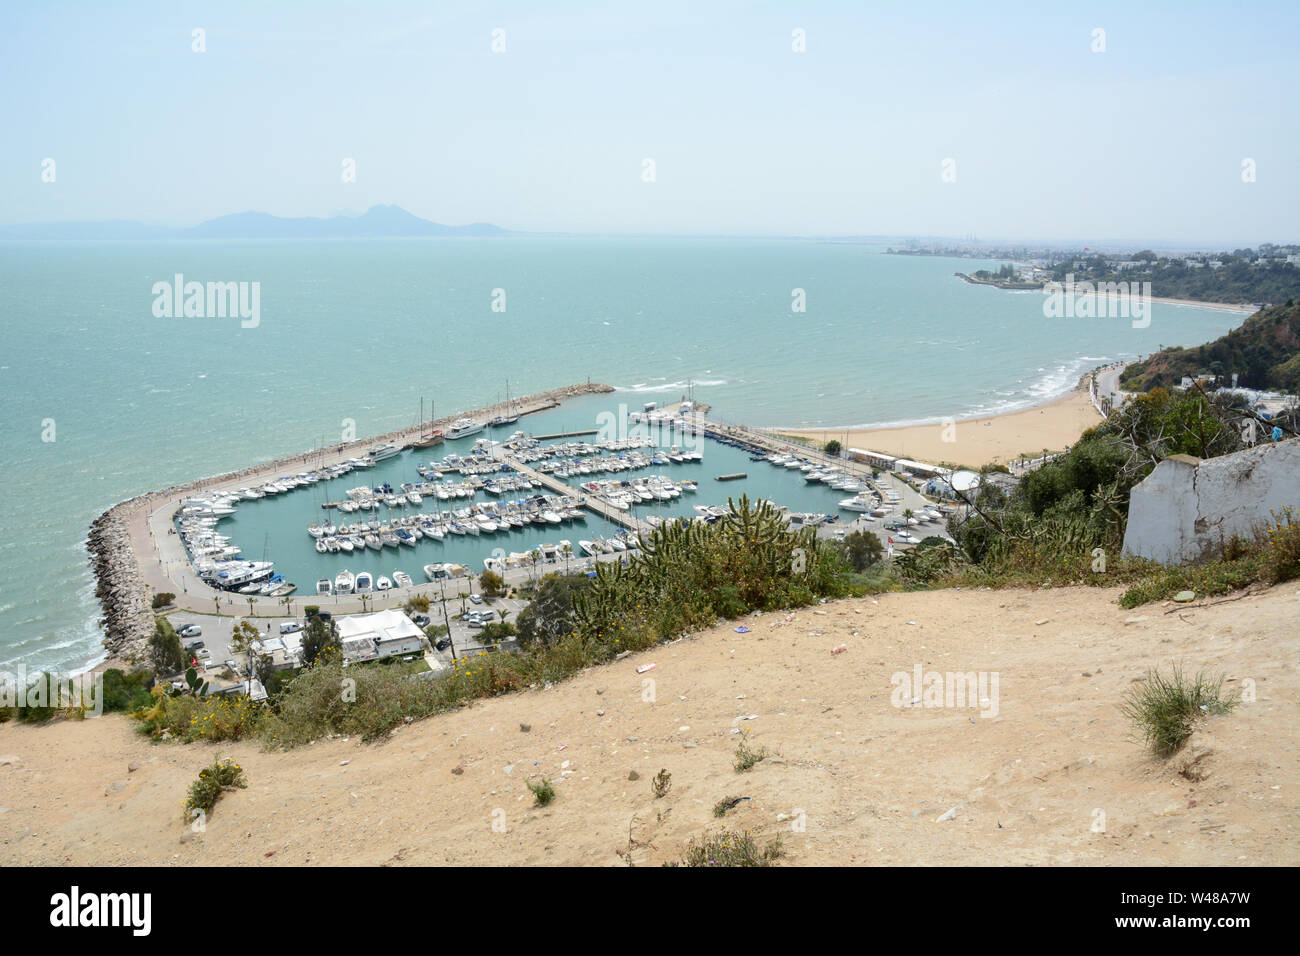 A hillside viewpoint overlooking the aquamarine Mediterranean Sea and boat harbour in the suburb of Sidi Bou Said, Tunis, Tunisia. Stock Photo